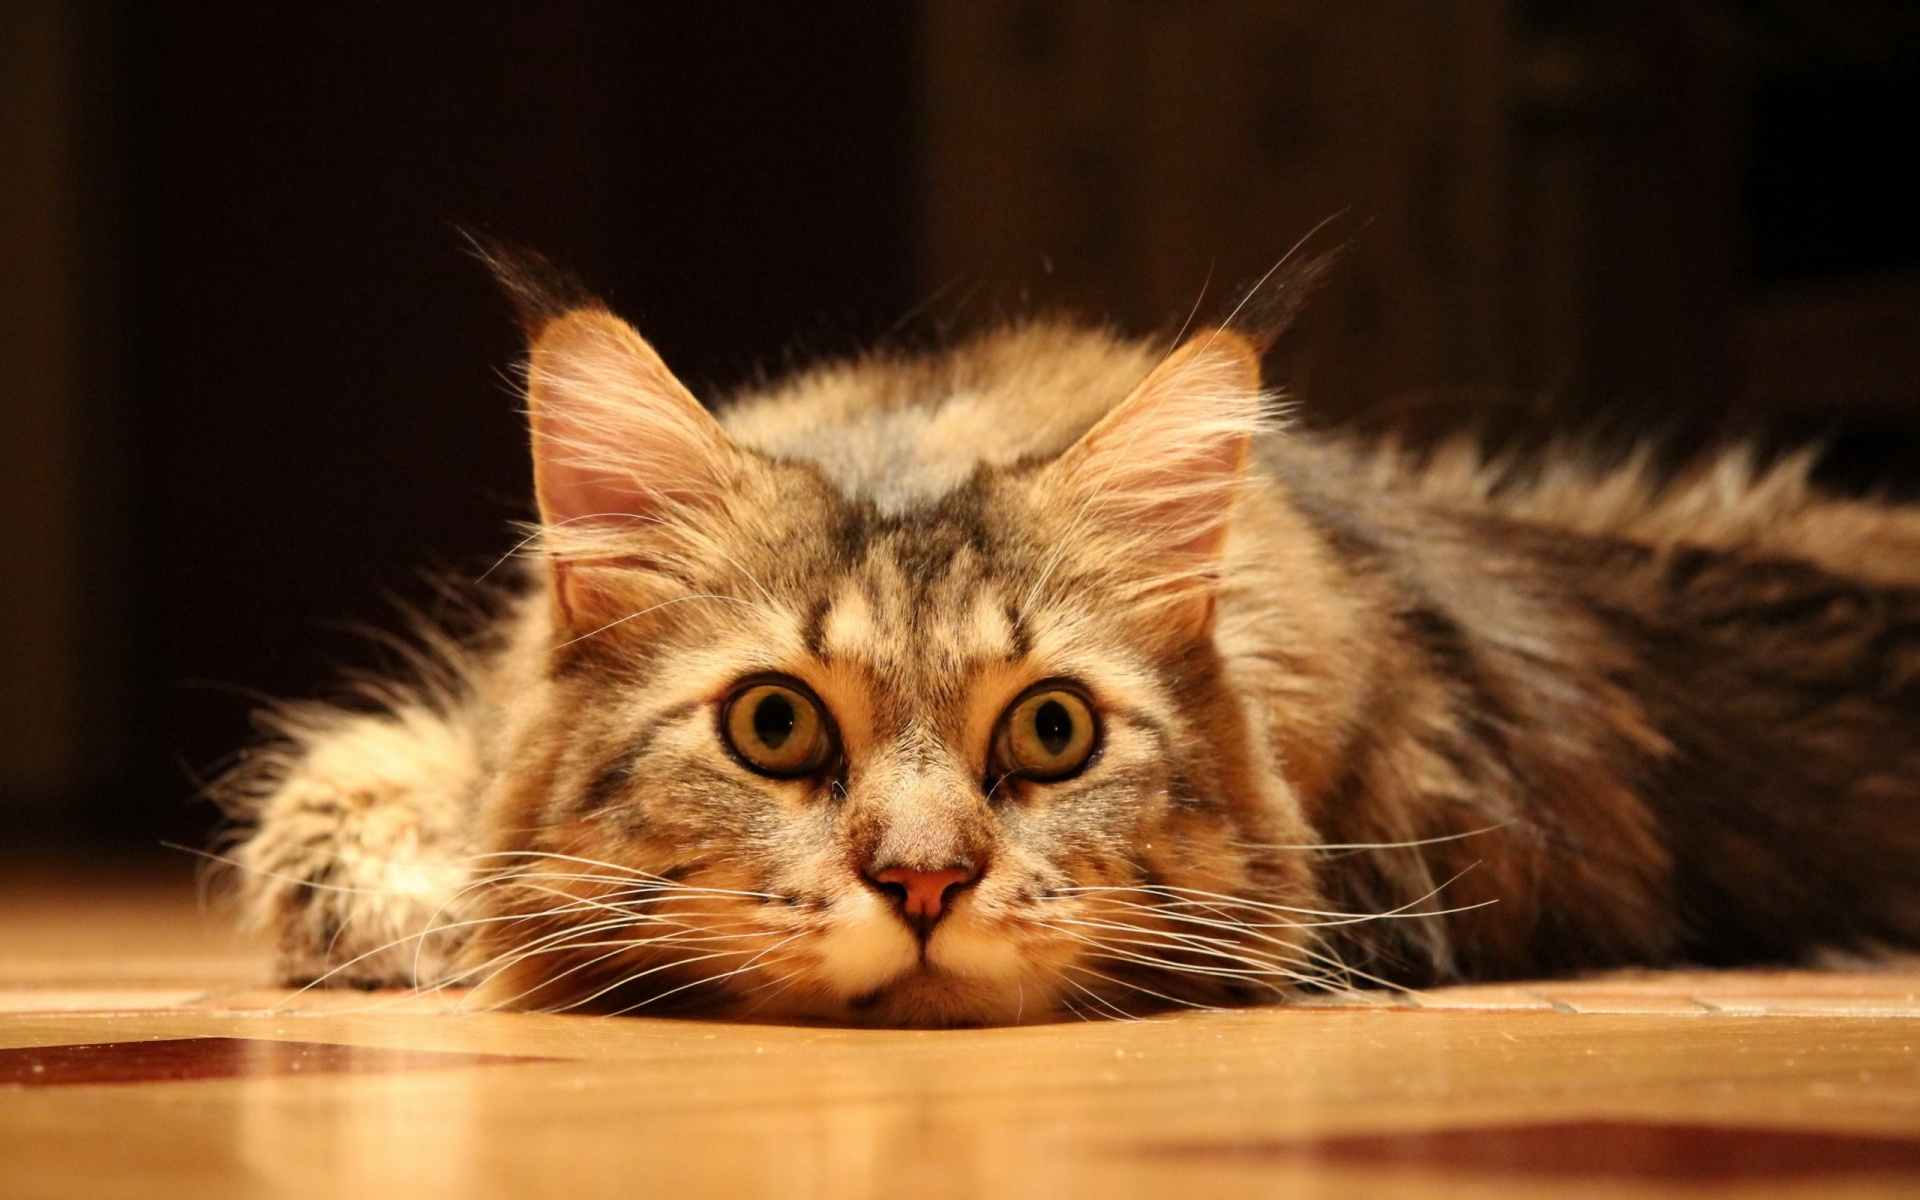 funny and cute cats 4 free hd wallpaper - funnypicture